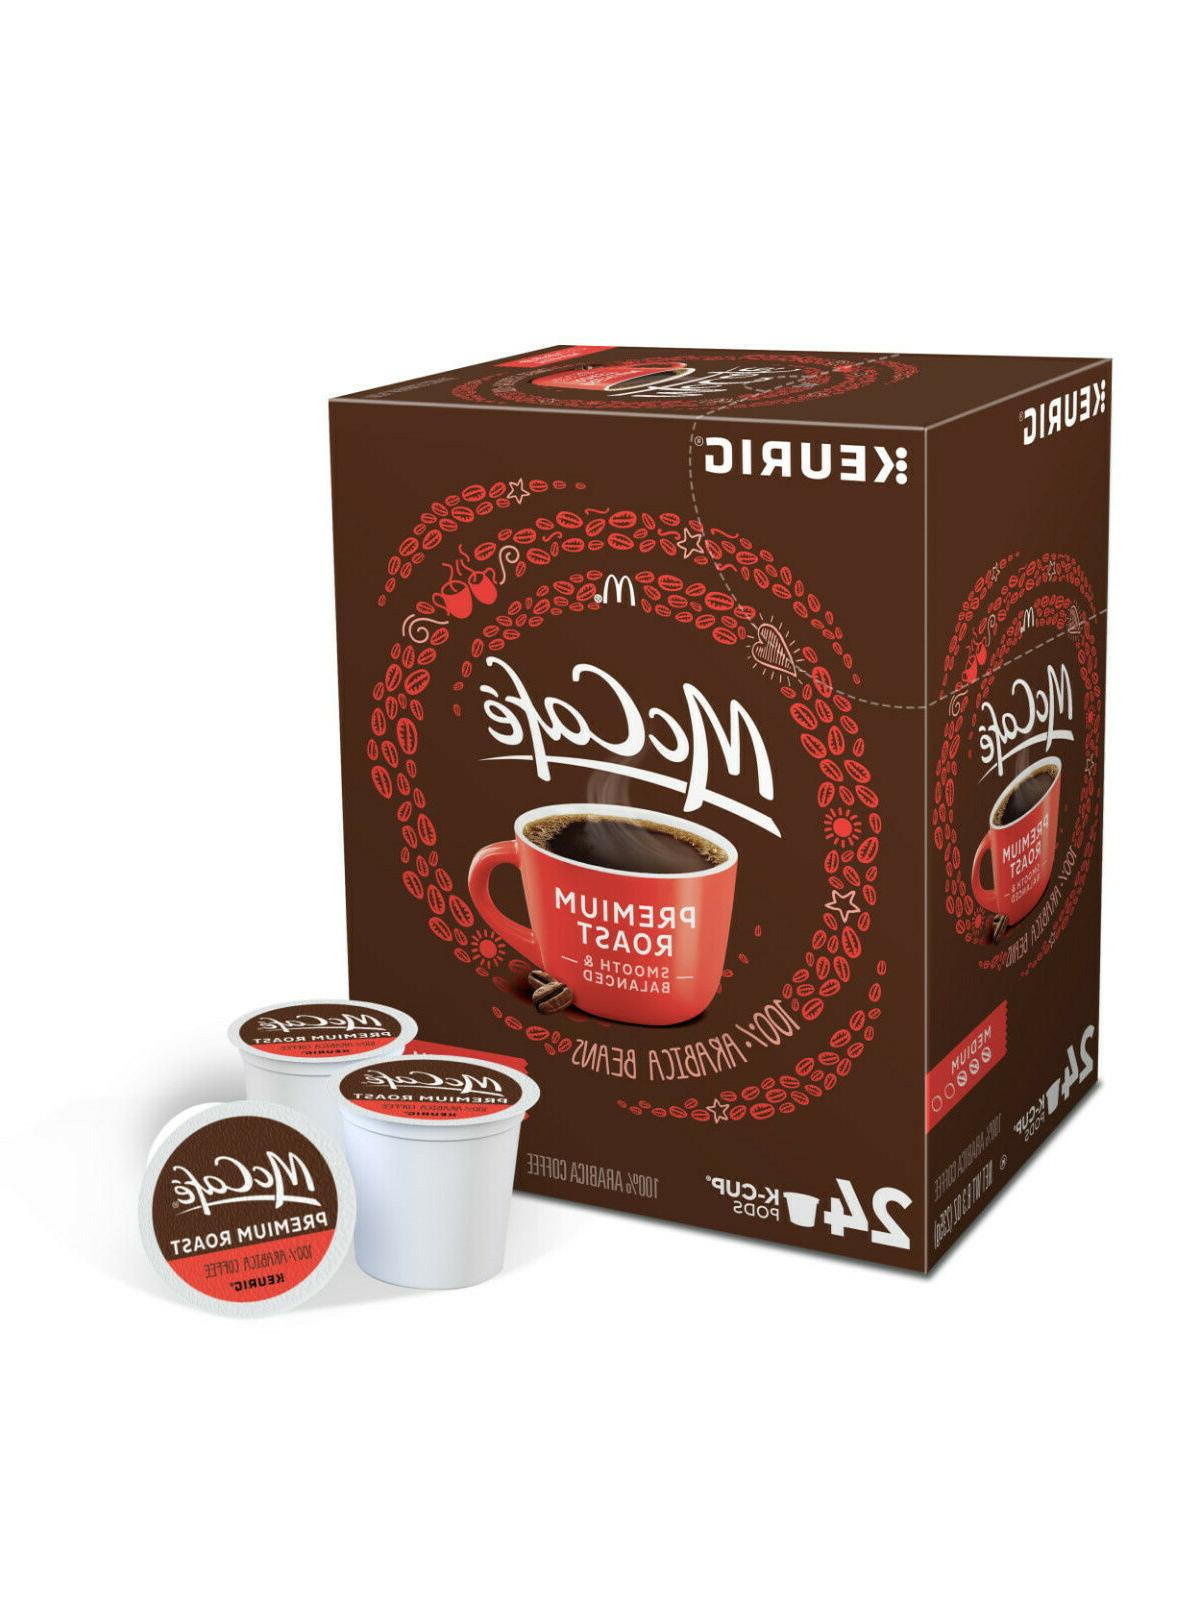 premium roast medium keurig k cups coffee